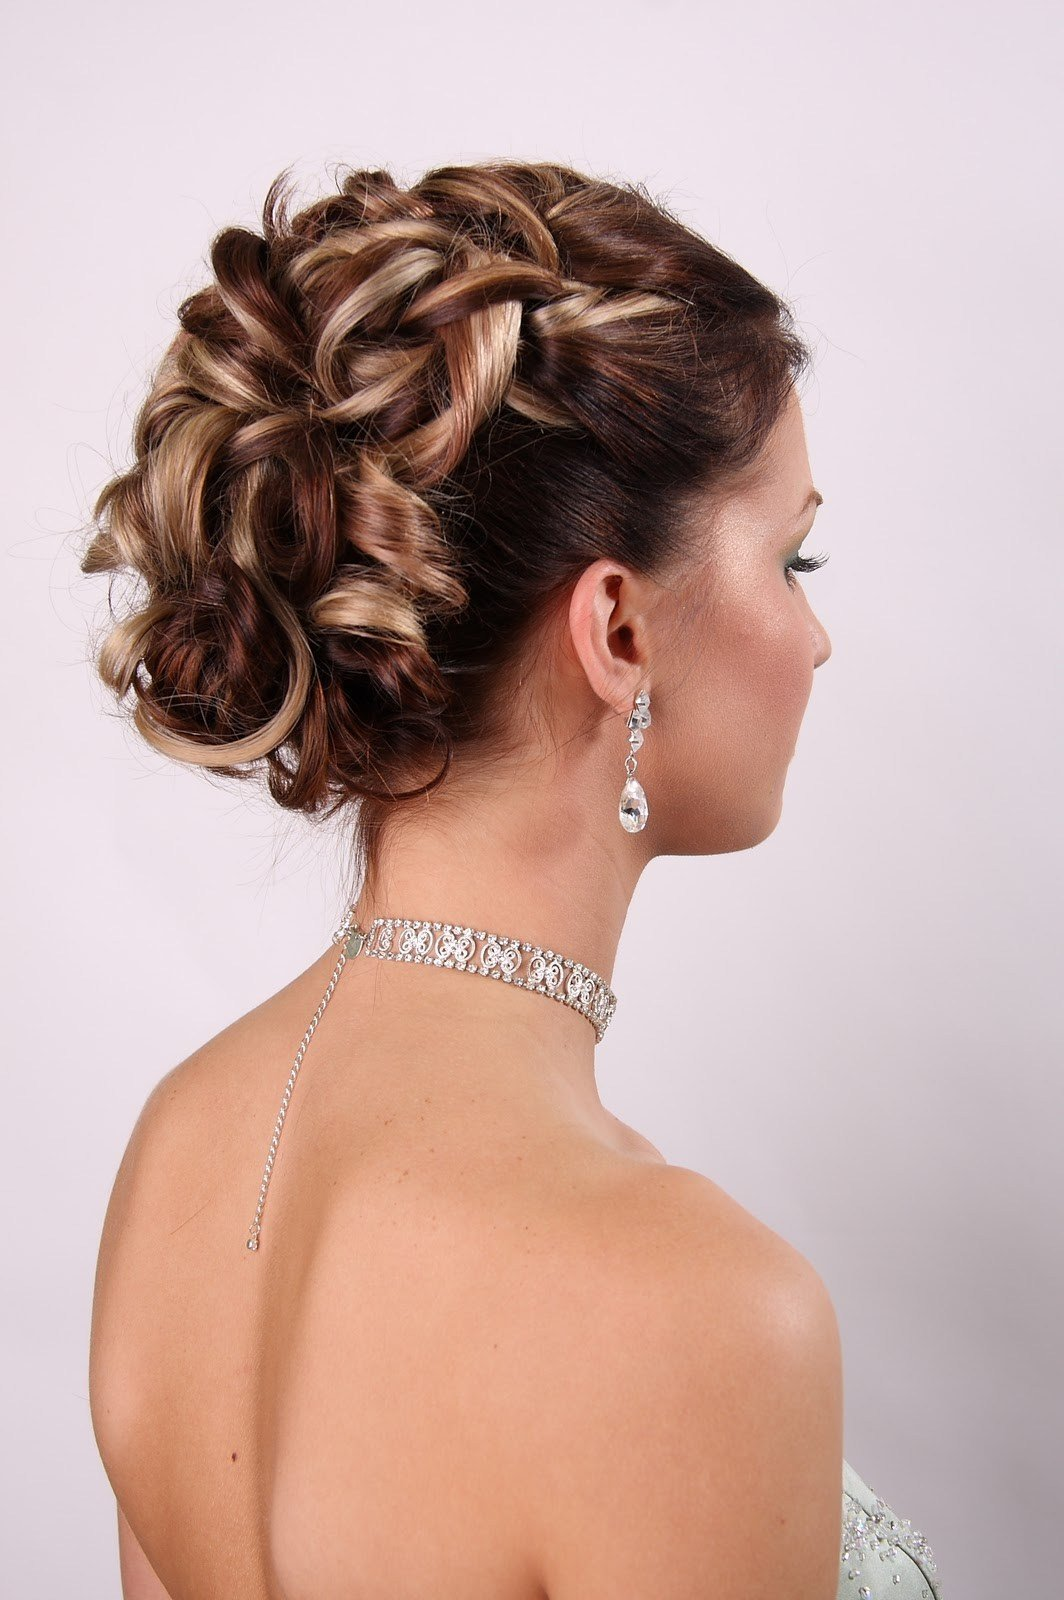 The Best 50 Hairstyles For Weddings To Look Amazingly Special Pictures